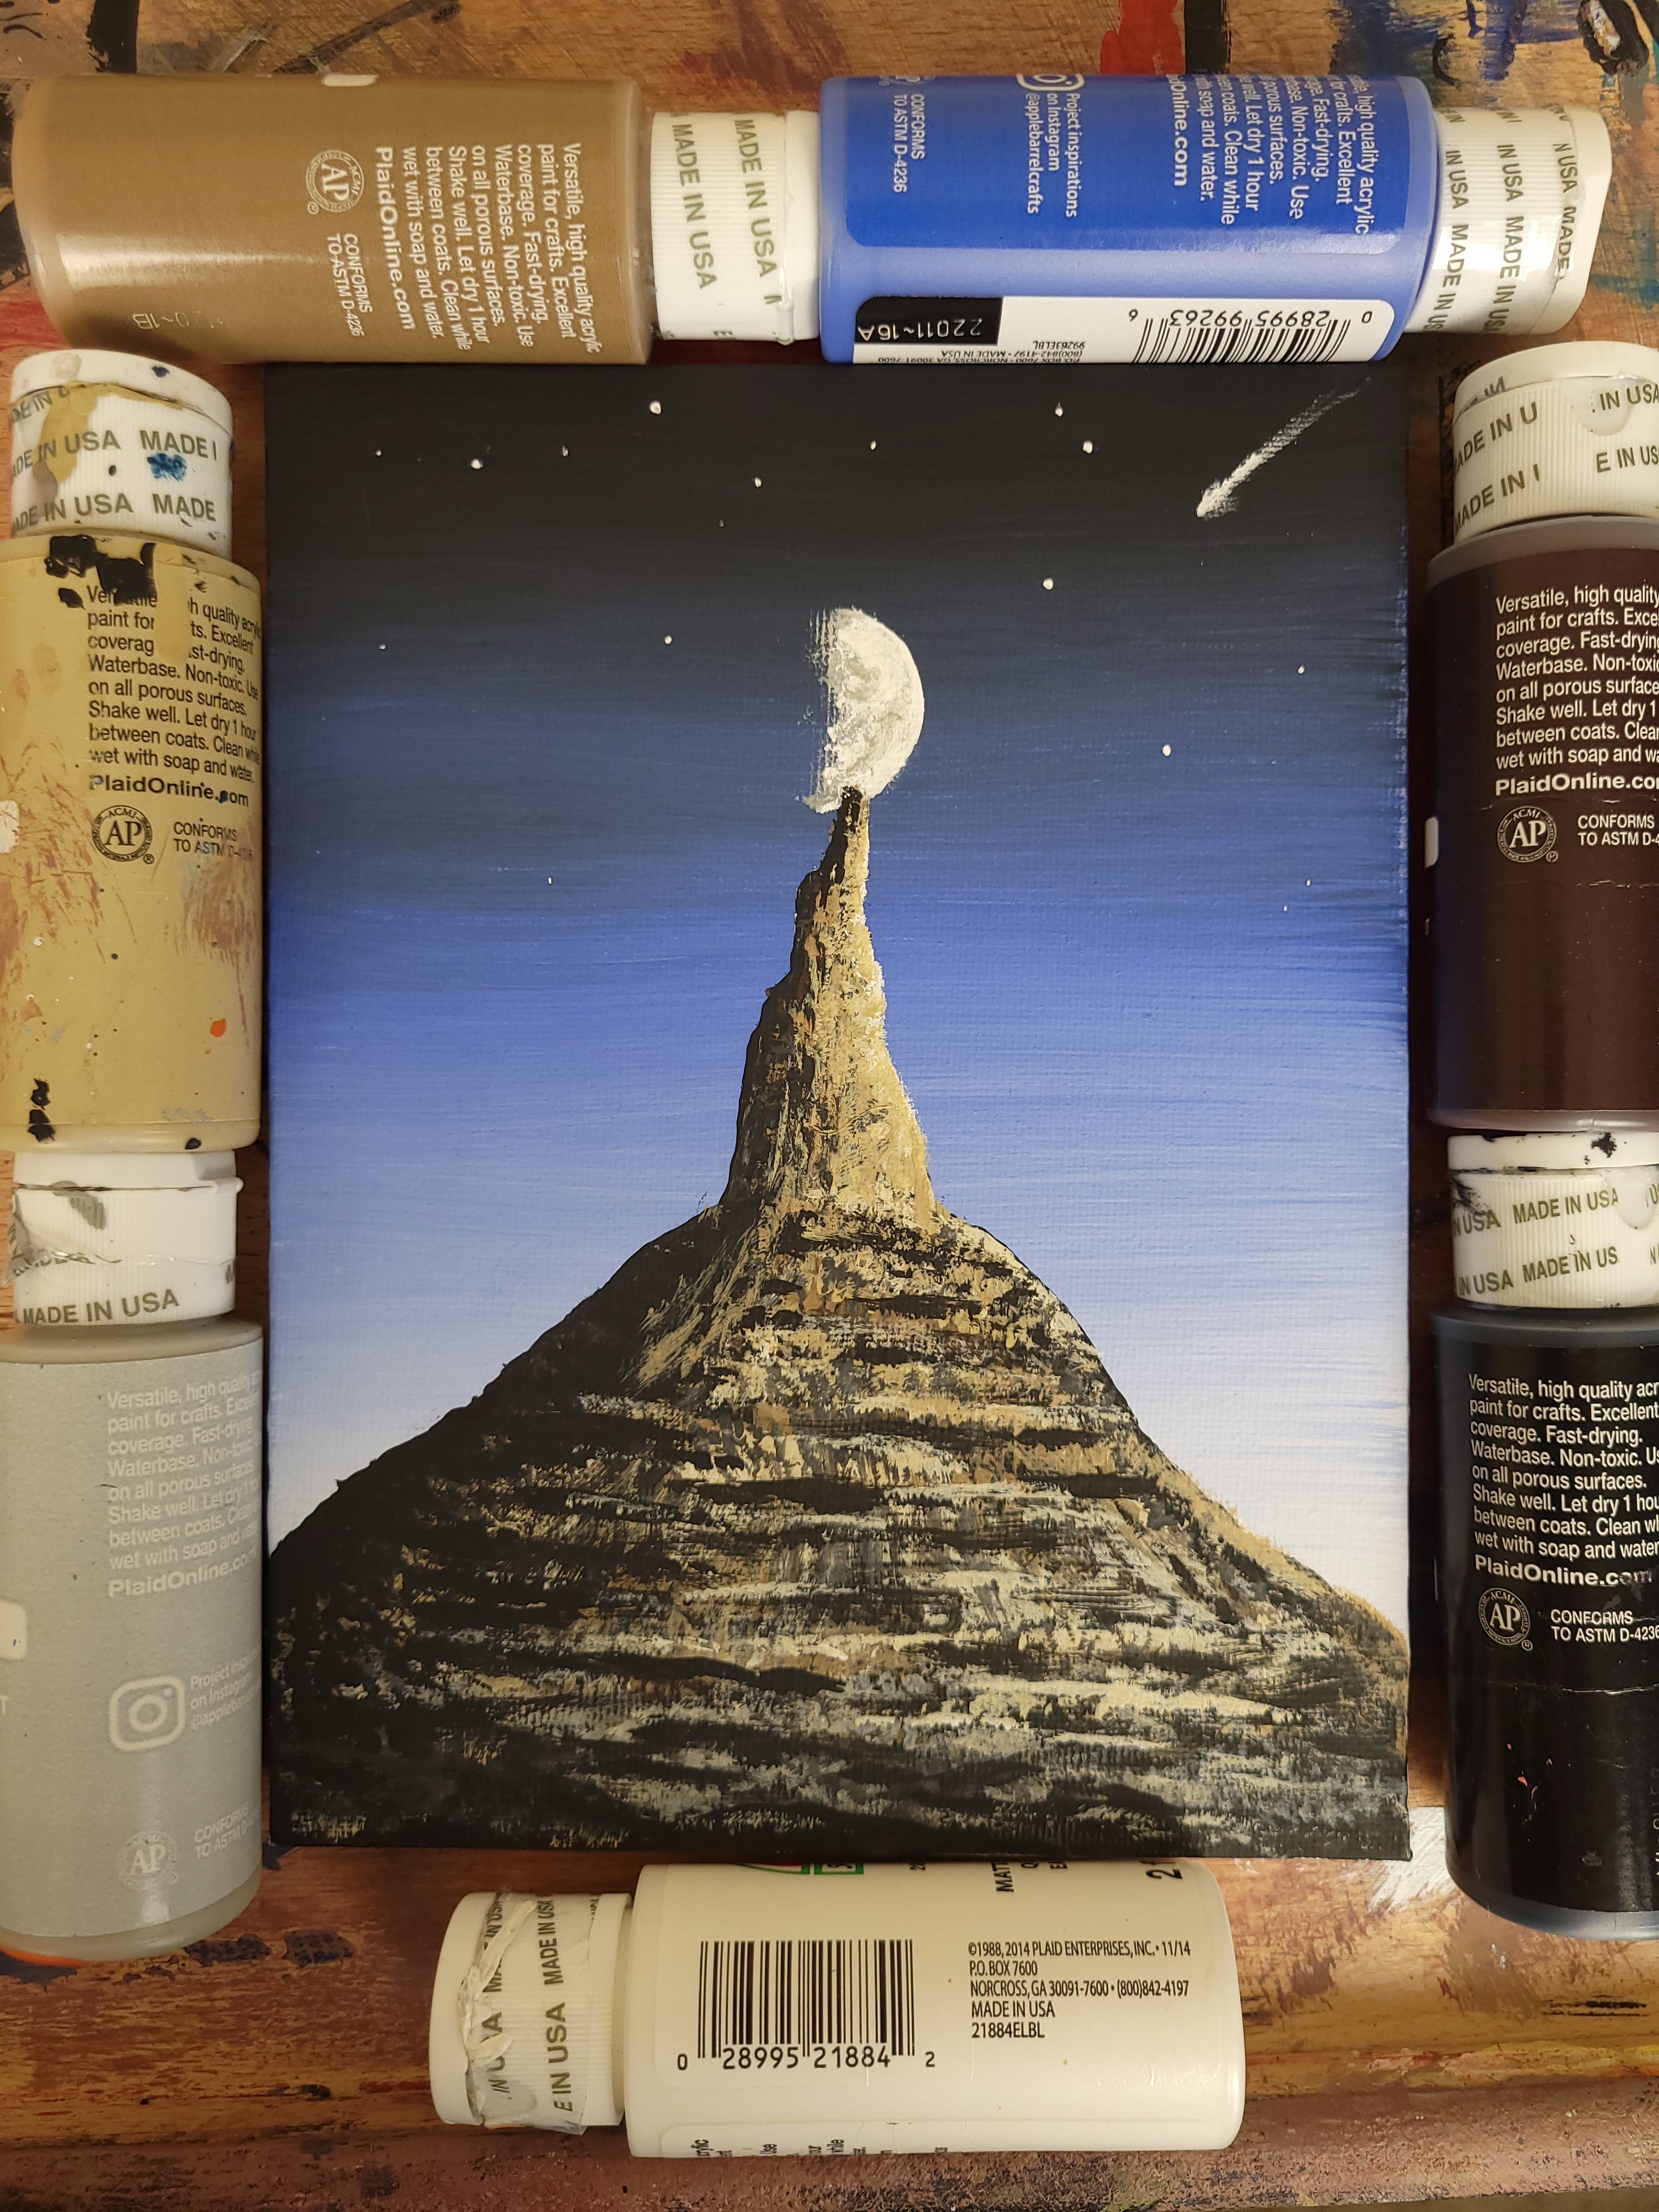 Acrylic paintings of various subjects